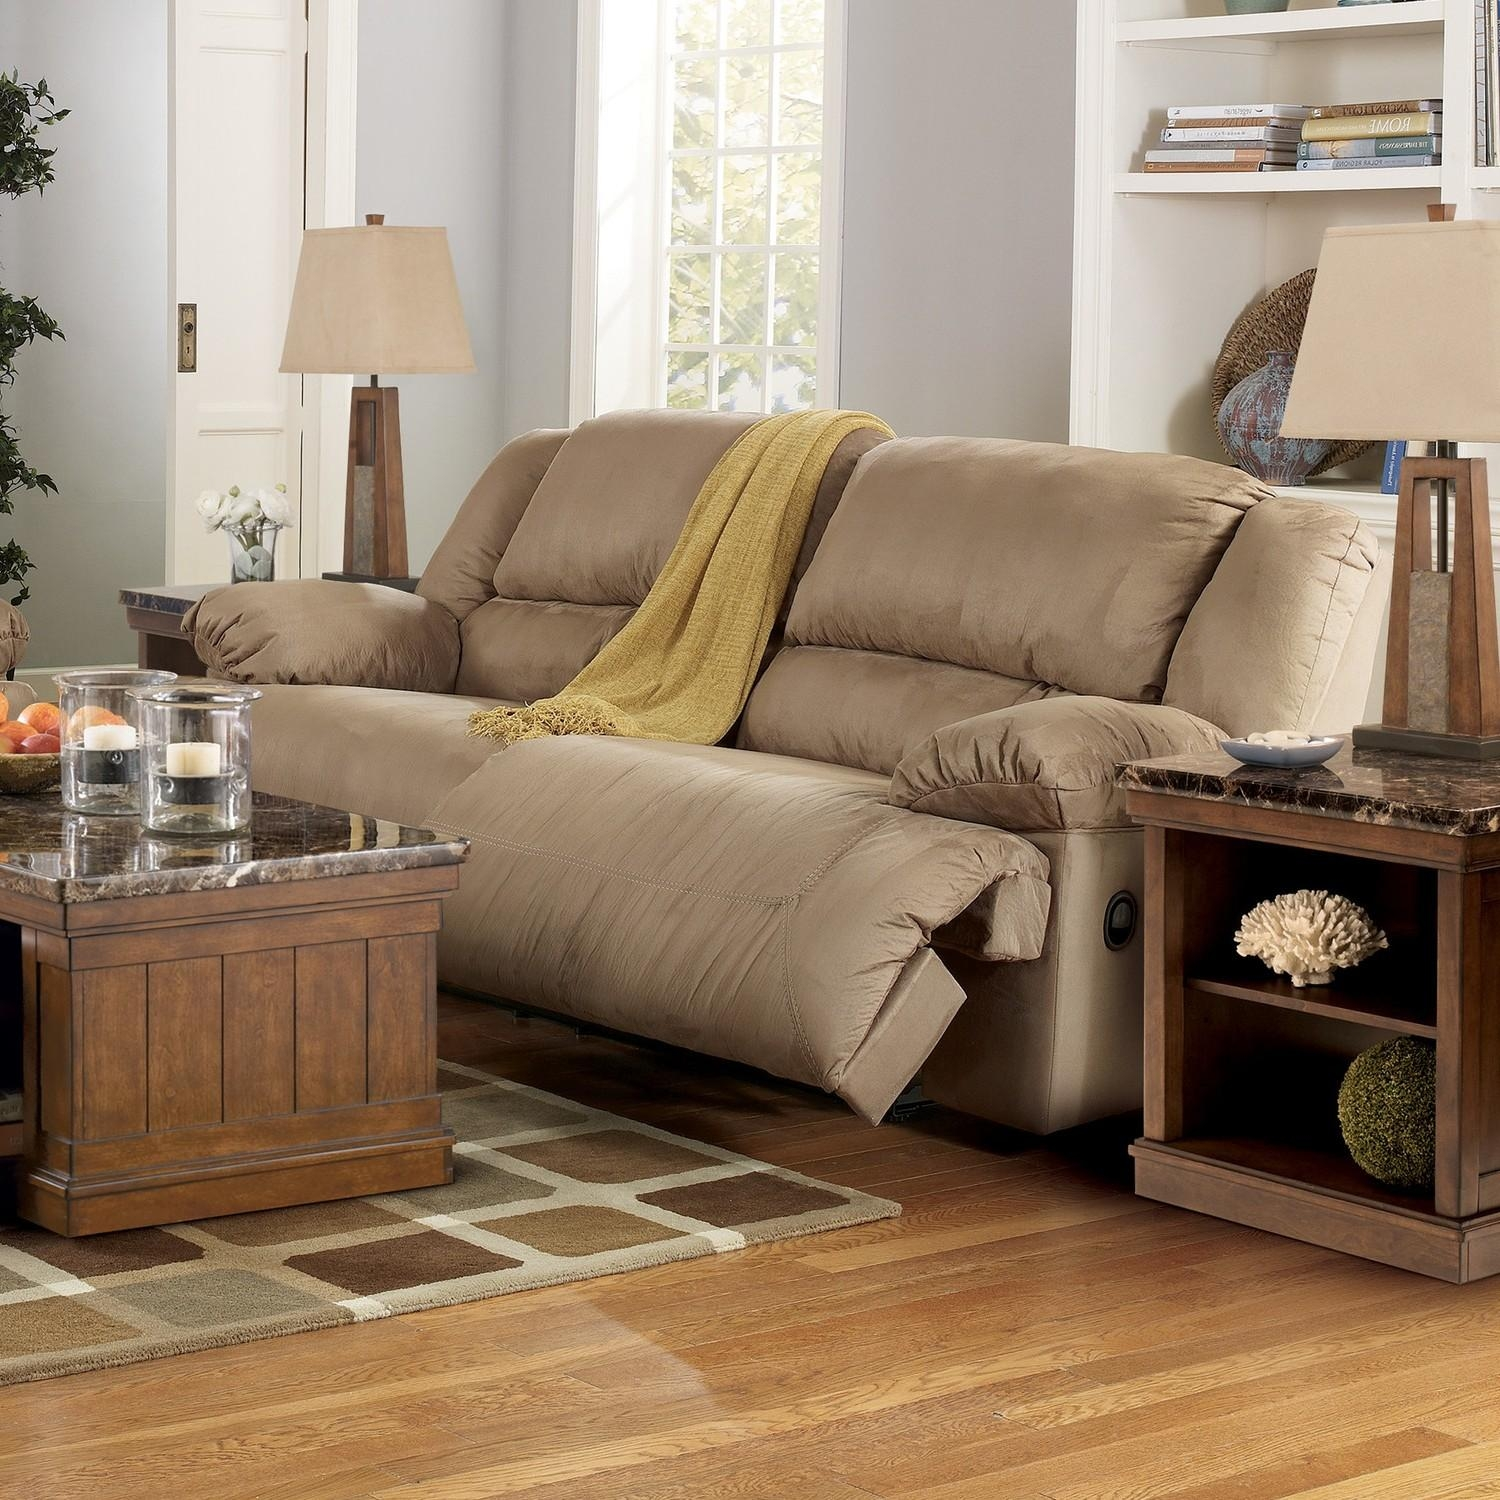 Sofas: Oversized Sofas That Are Ready For Hours Of Lounging Time For Overstuffed Sofas And Chairs (View 18 of 20)